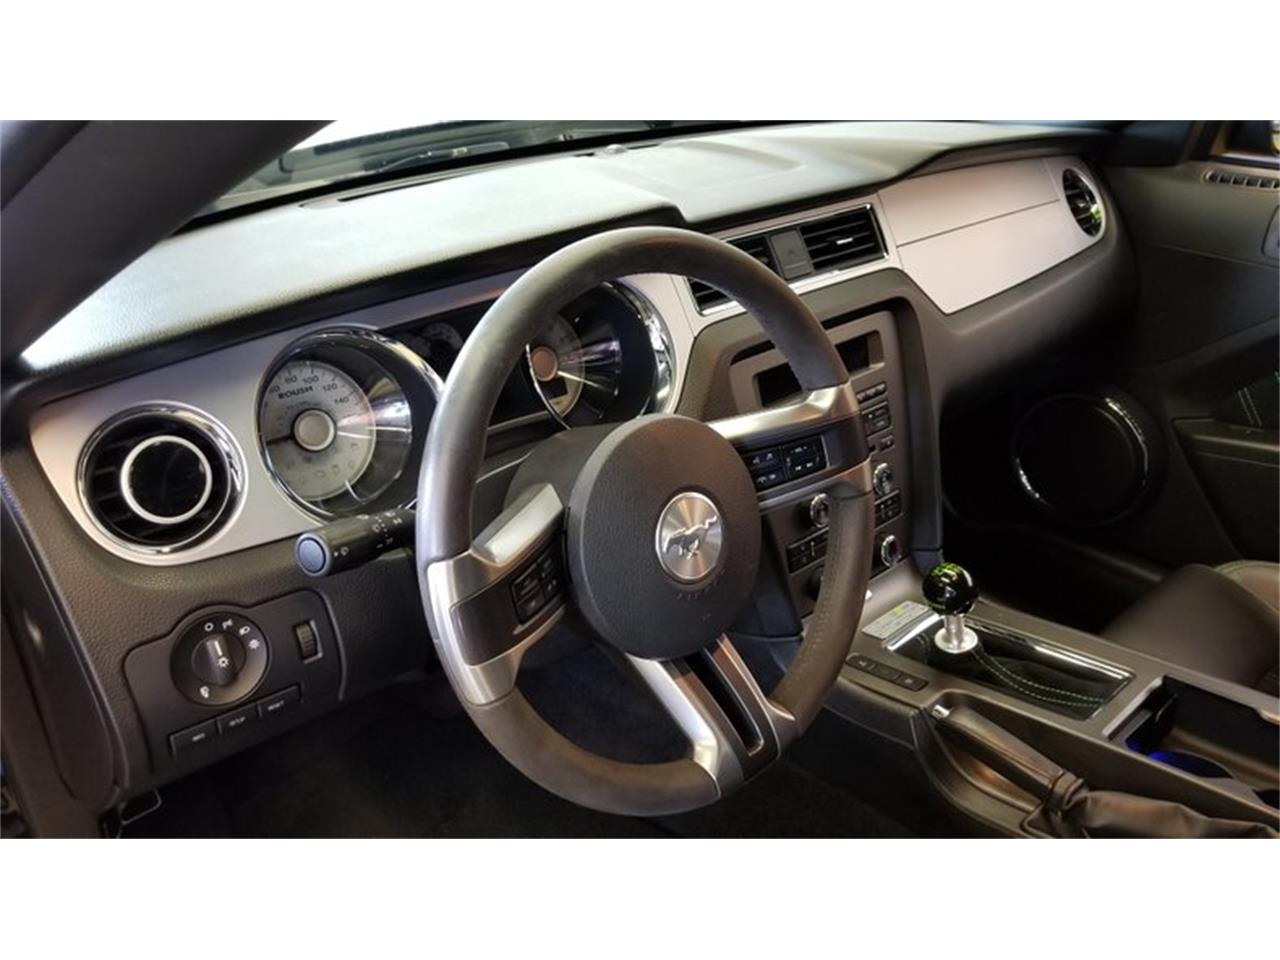 2012 Ford Mustang for sale in Mankato, MN – photo 29